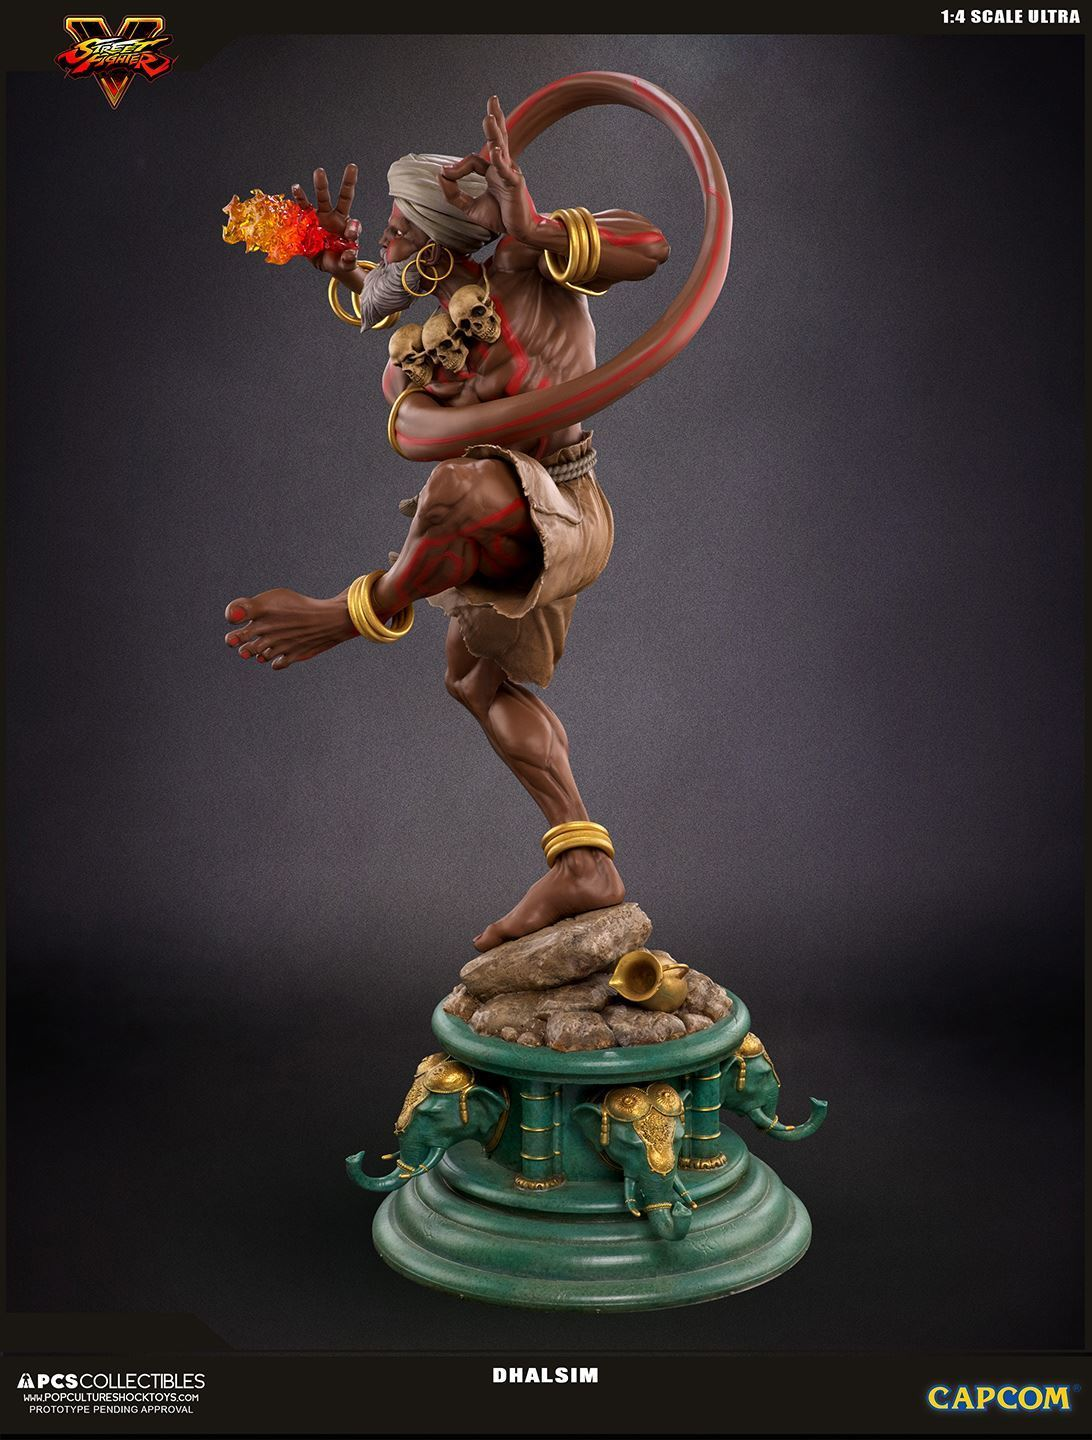 Streetfighter V - Dhalsim 1:4 Scale Statue image